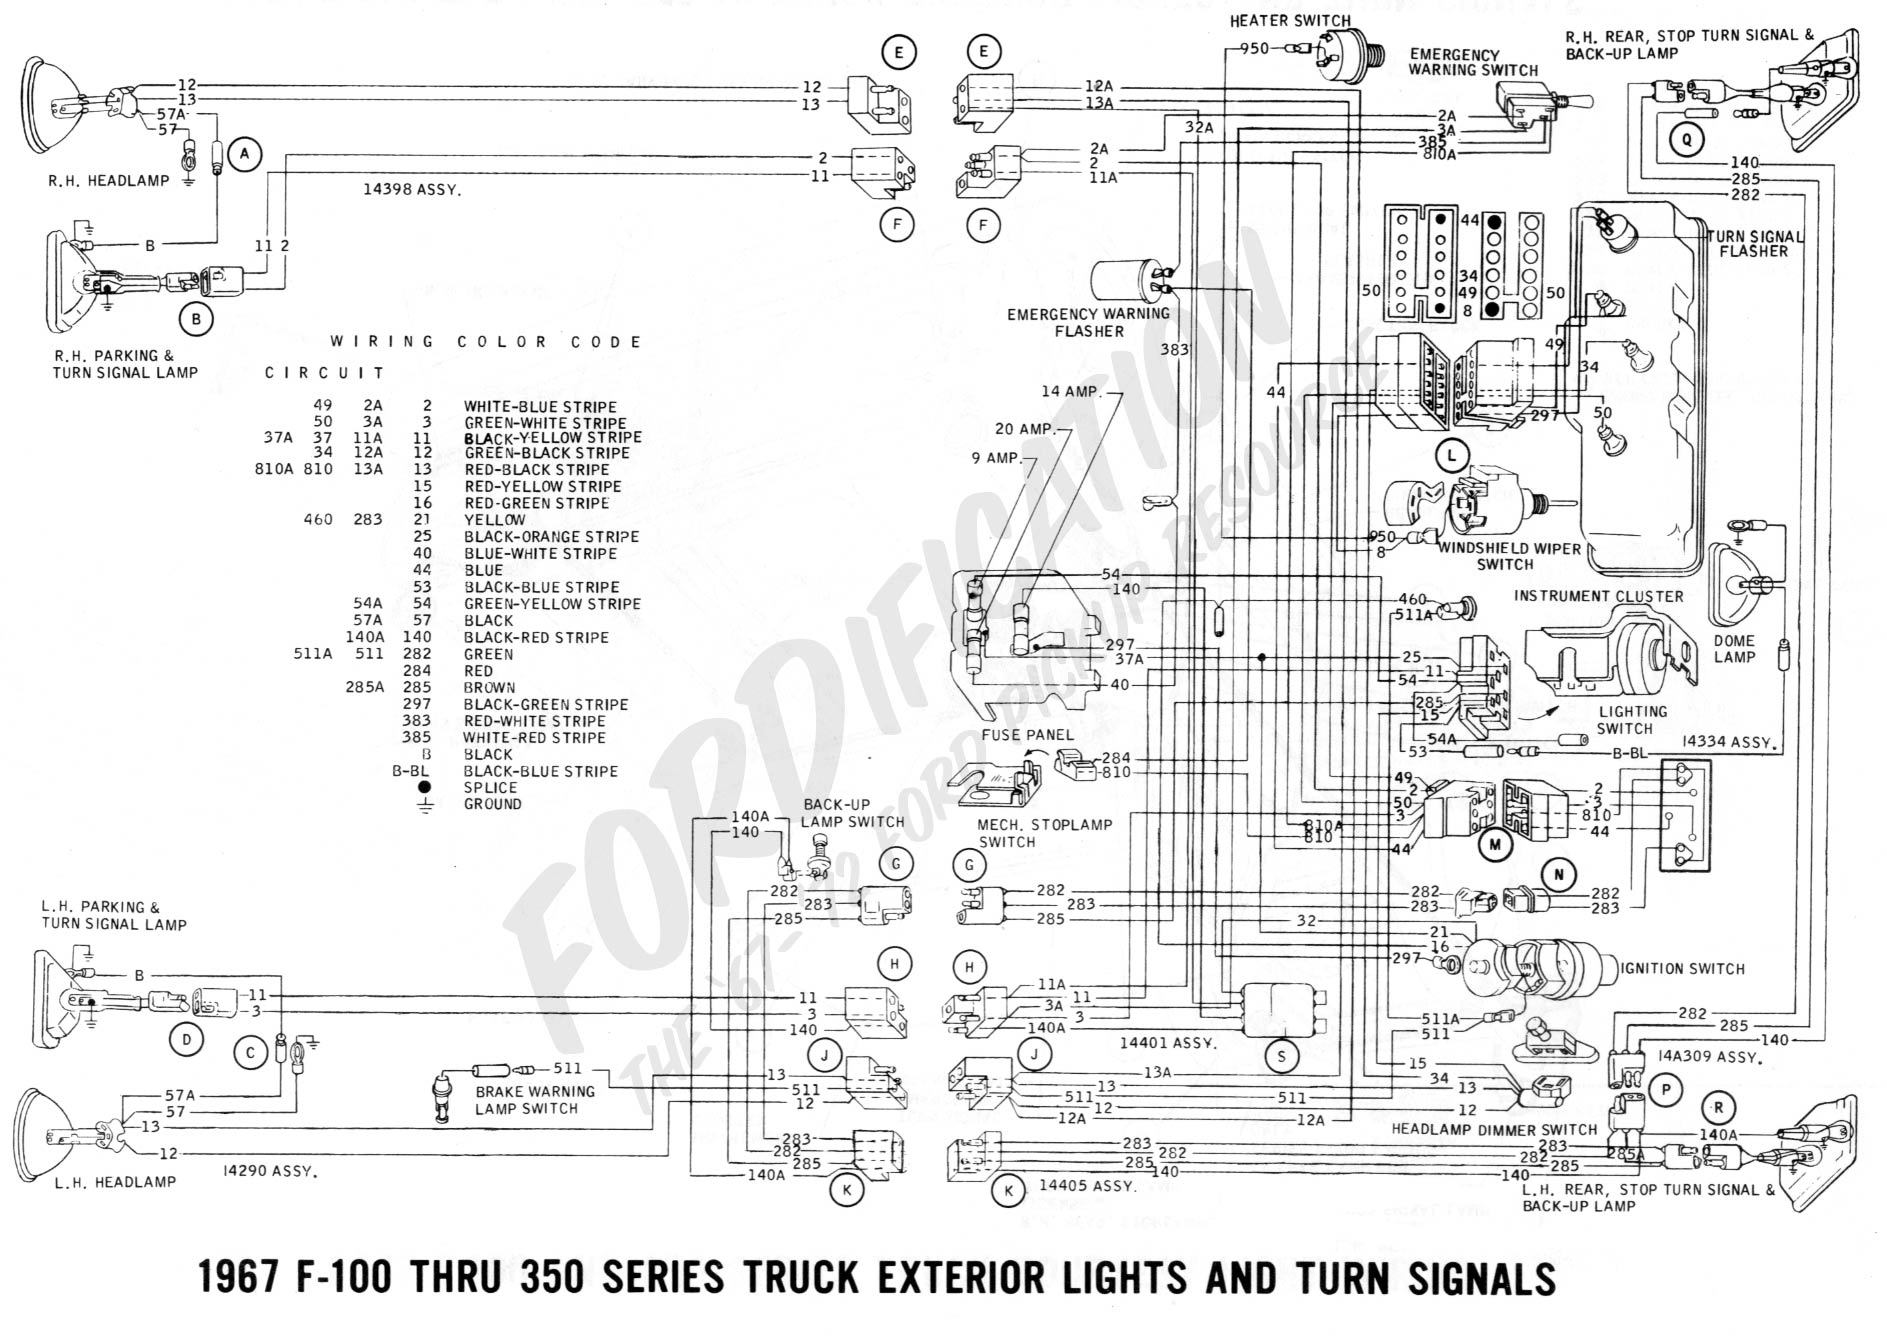 80 1967_exterior_lights_and_turn_signals_page_2_1db6c529c4c9567560e56d6320f993290ba5b803 66 mustang wiring diagram 1966 mustang dash wiring diagram 1966 ford truck wiring diagram at eliteediting.co